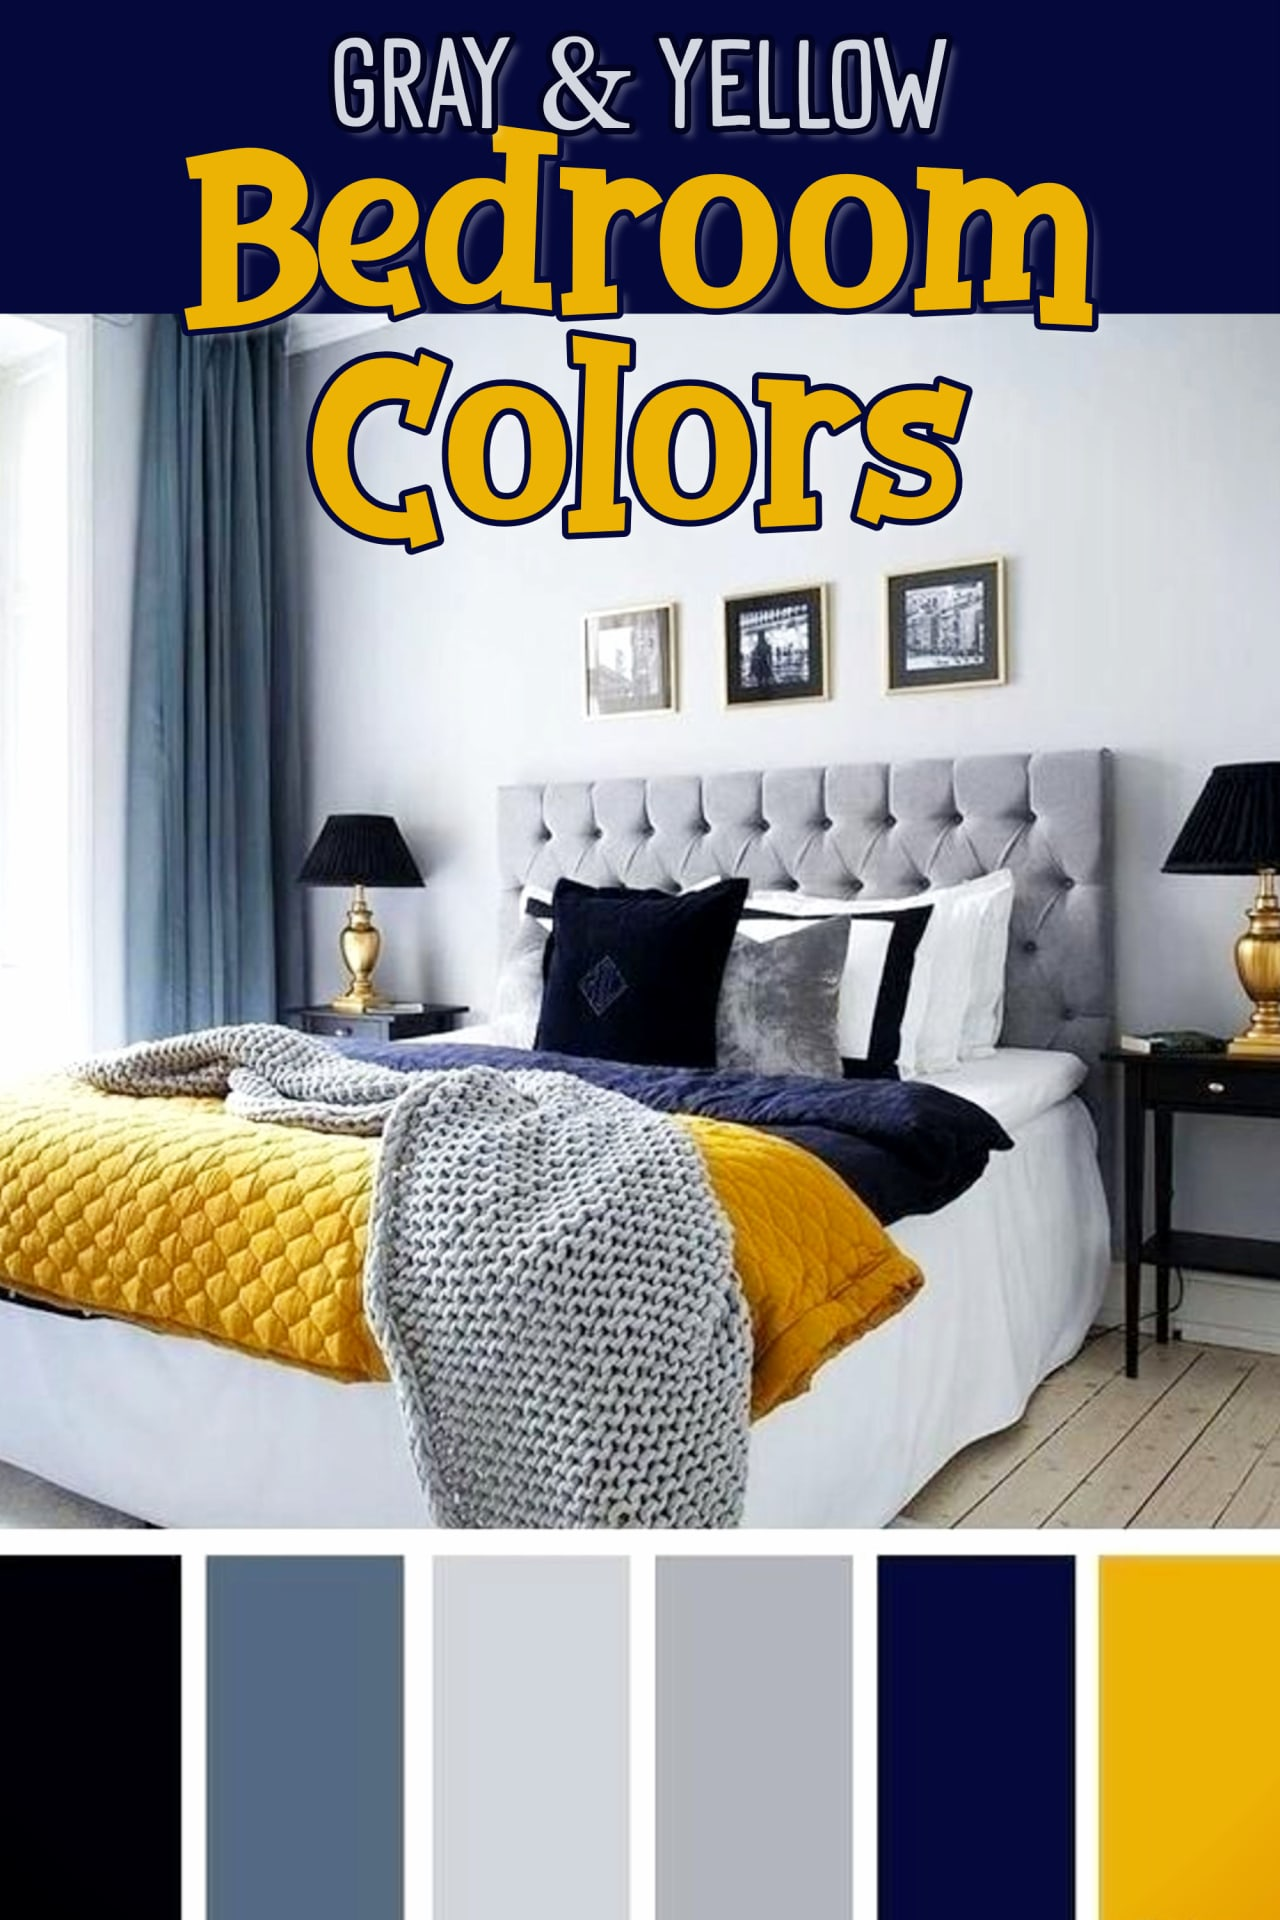 Bedroom Accent Colors For A Gray And Yellow Blue